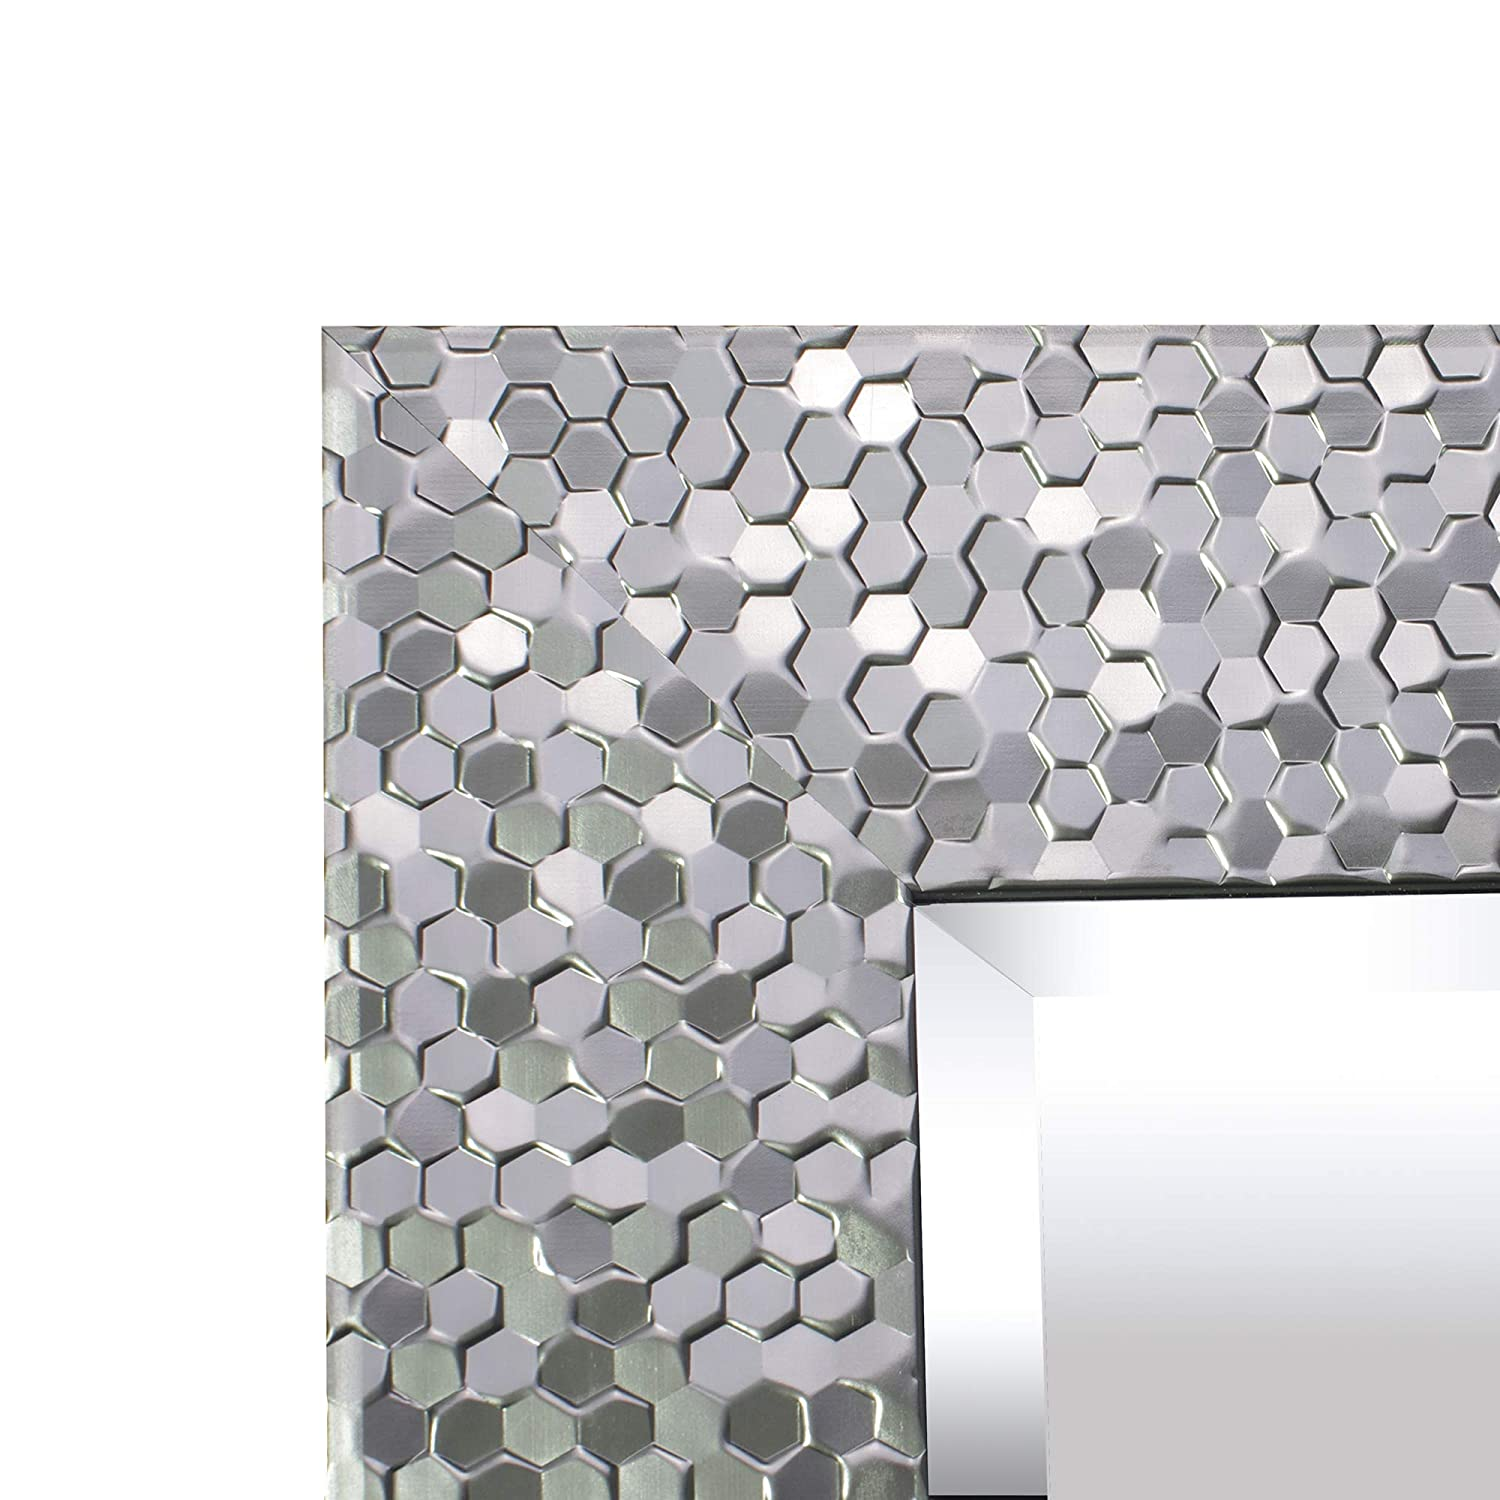 MIRROR TREND 24 x 32 Inches Silver Beveled Mirrors for Wall Mirrors for Living Room Large Bathroom Mirrors Wall Mounted Mosaic Design Mirror for Wall Decorative Silver